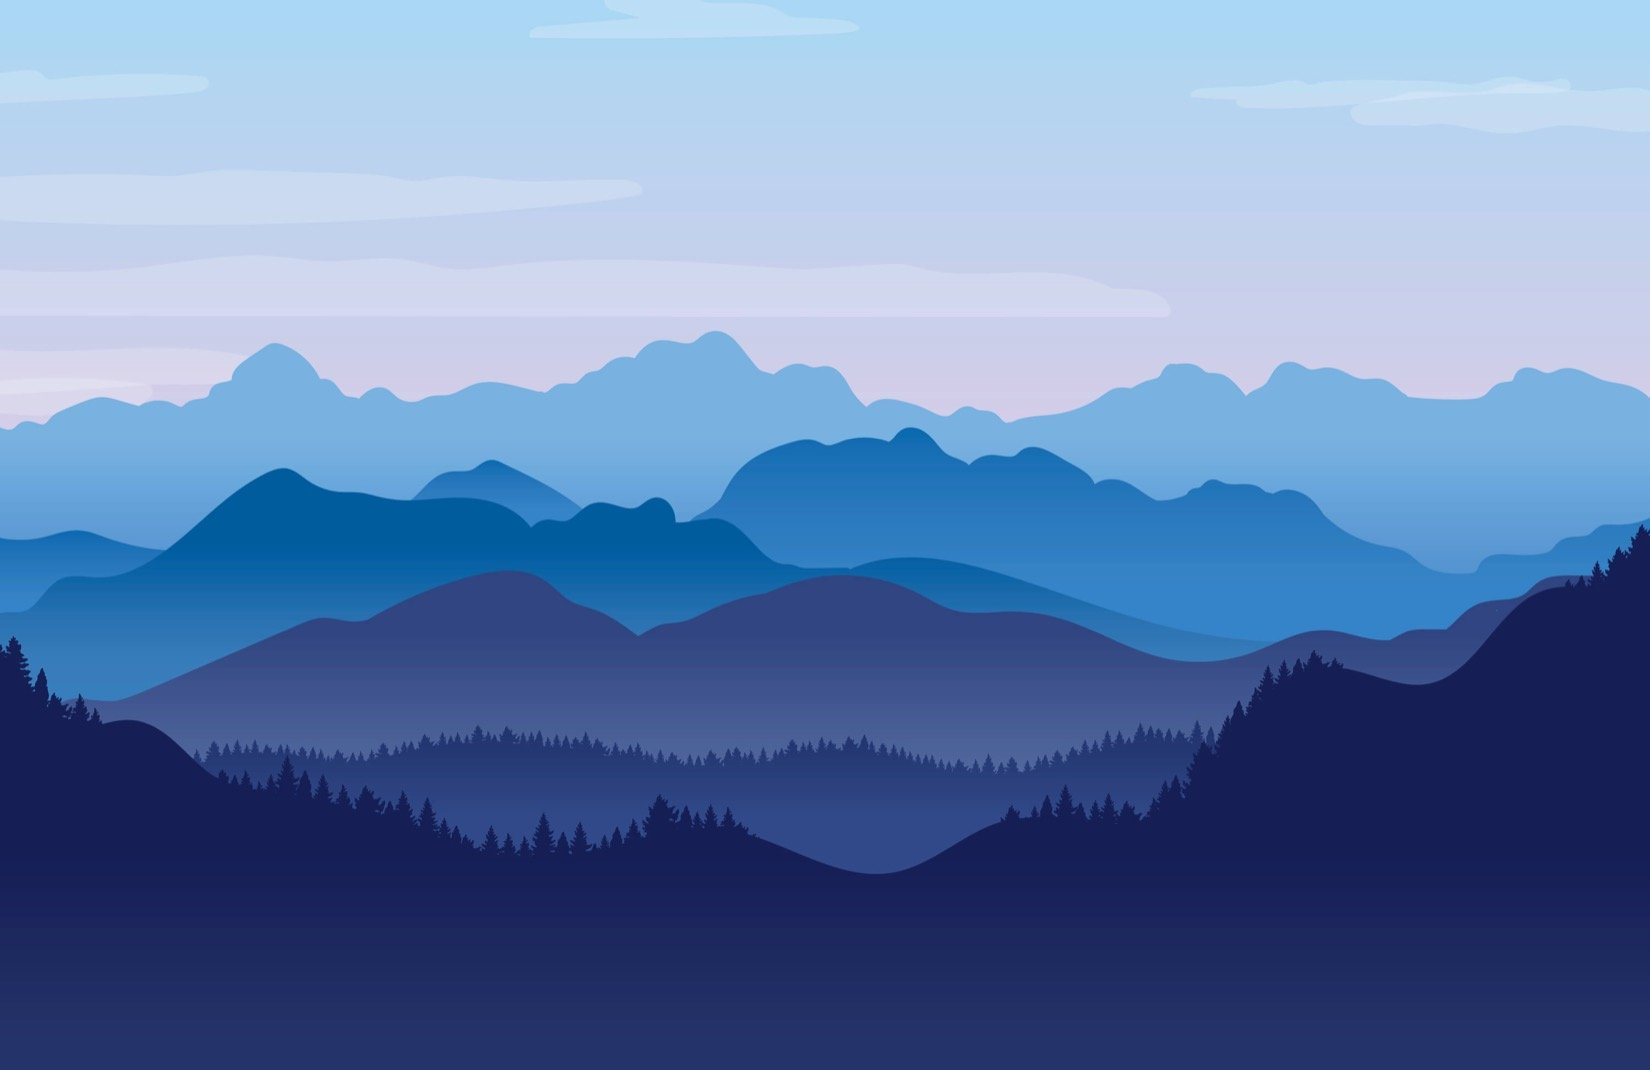 Blue Illustrated Mountains Wallpaper Mural Hovia AU 1650x1070